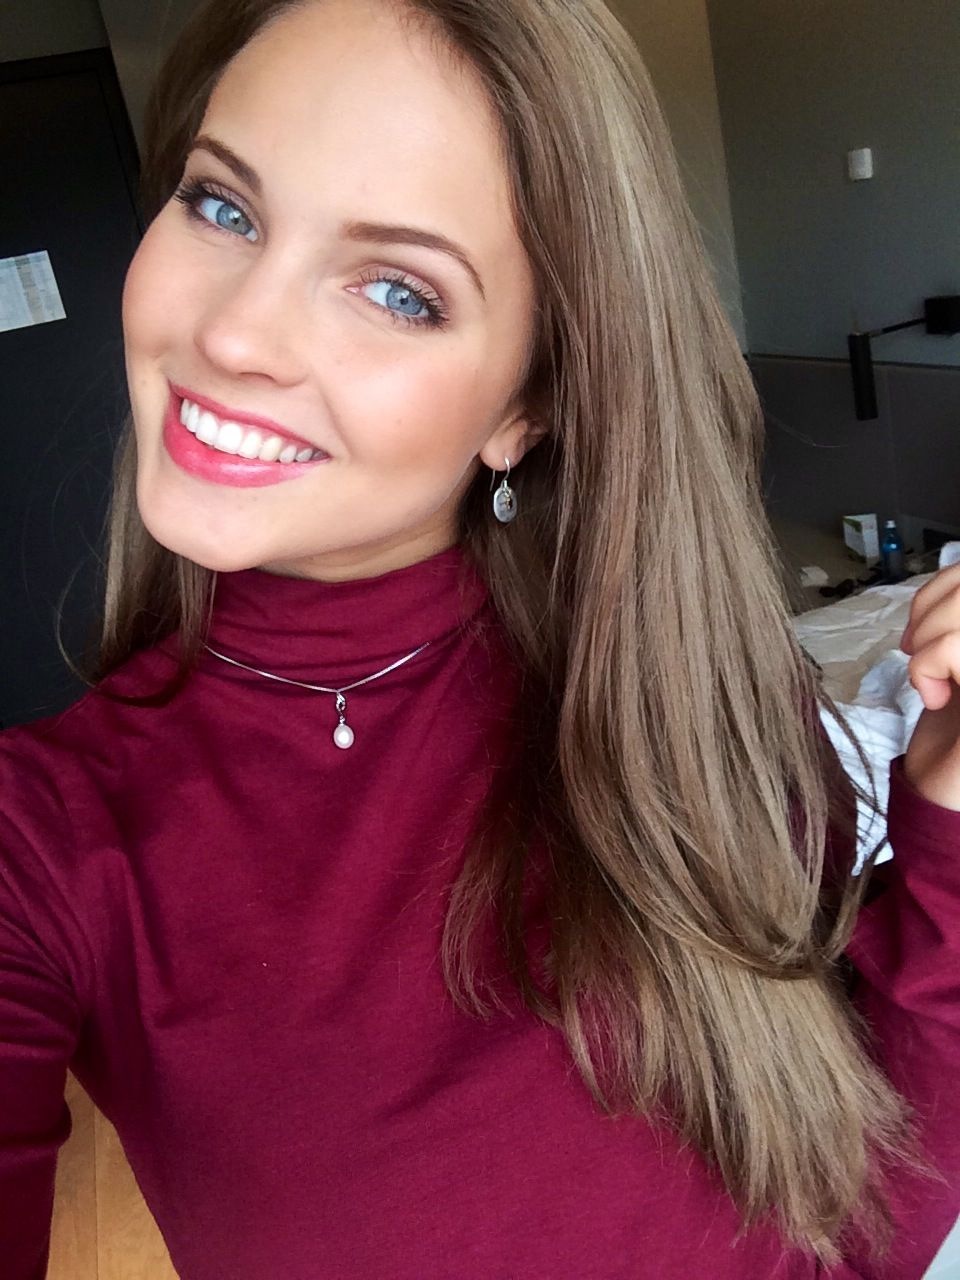 Super Beautiful Inside And Out Emilie Voe Nereng, Norwegian Top Blogger  Emilie Voe-1715